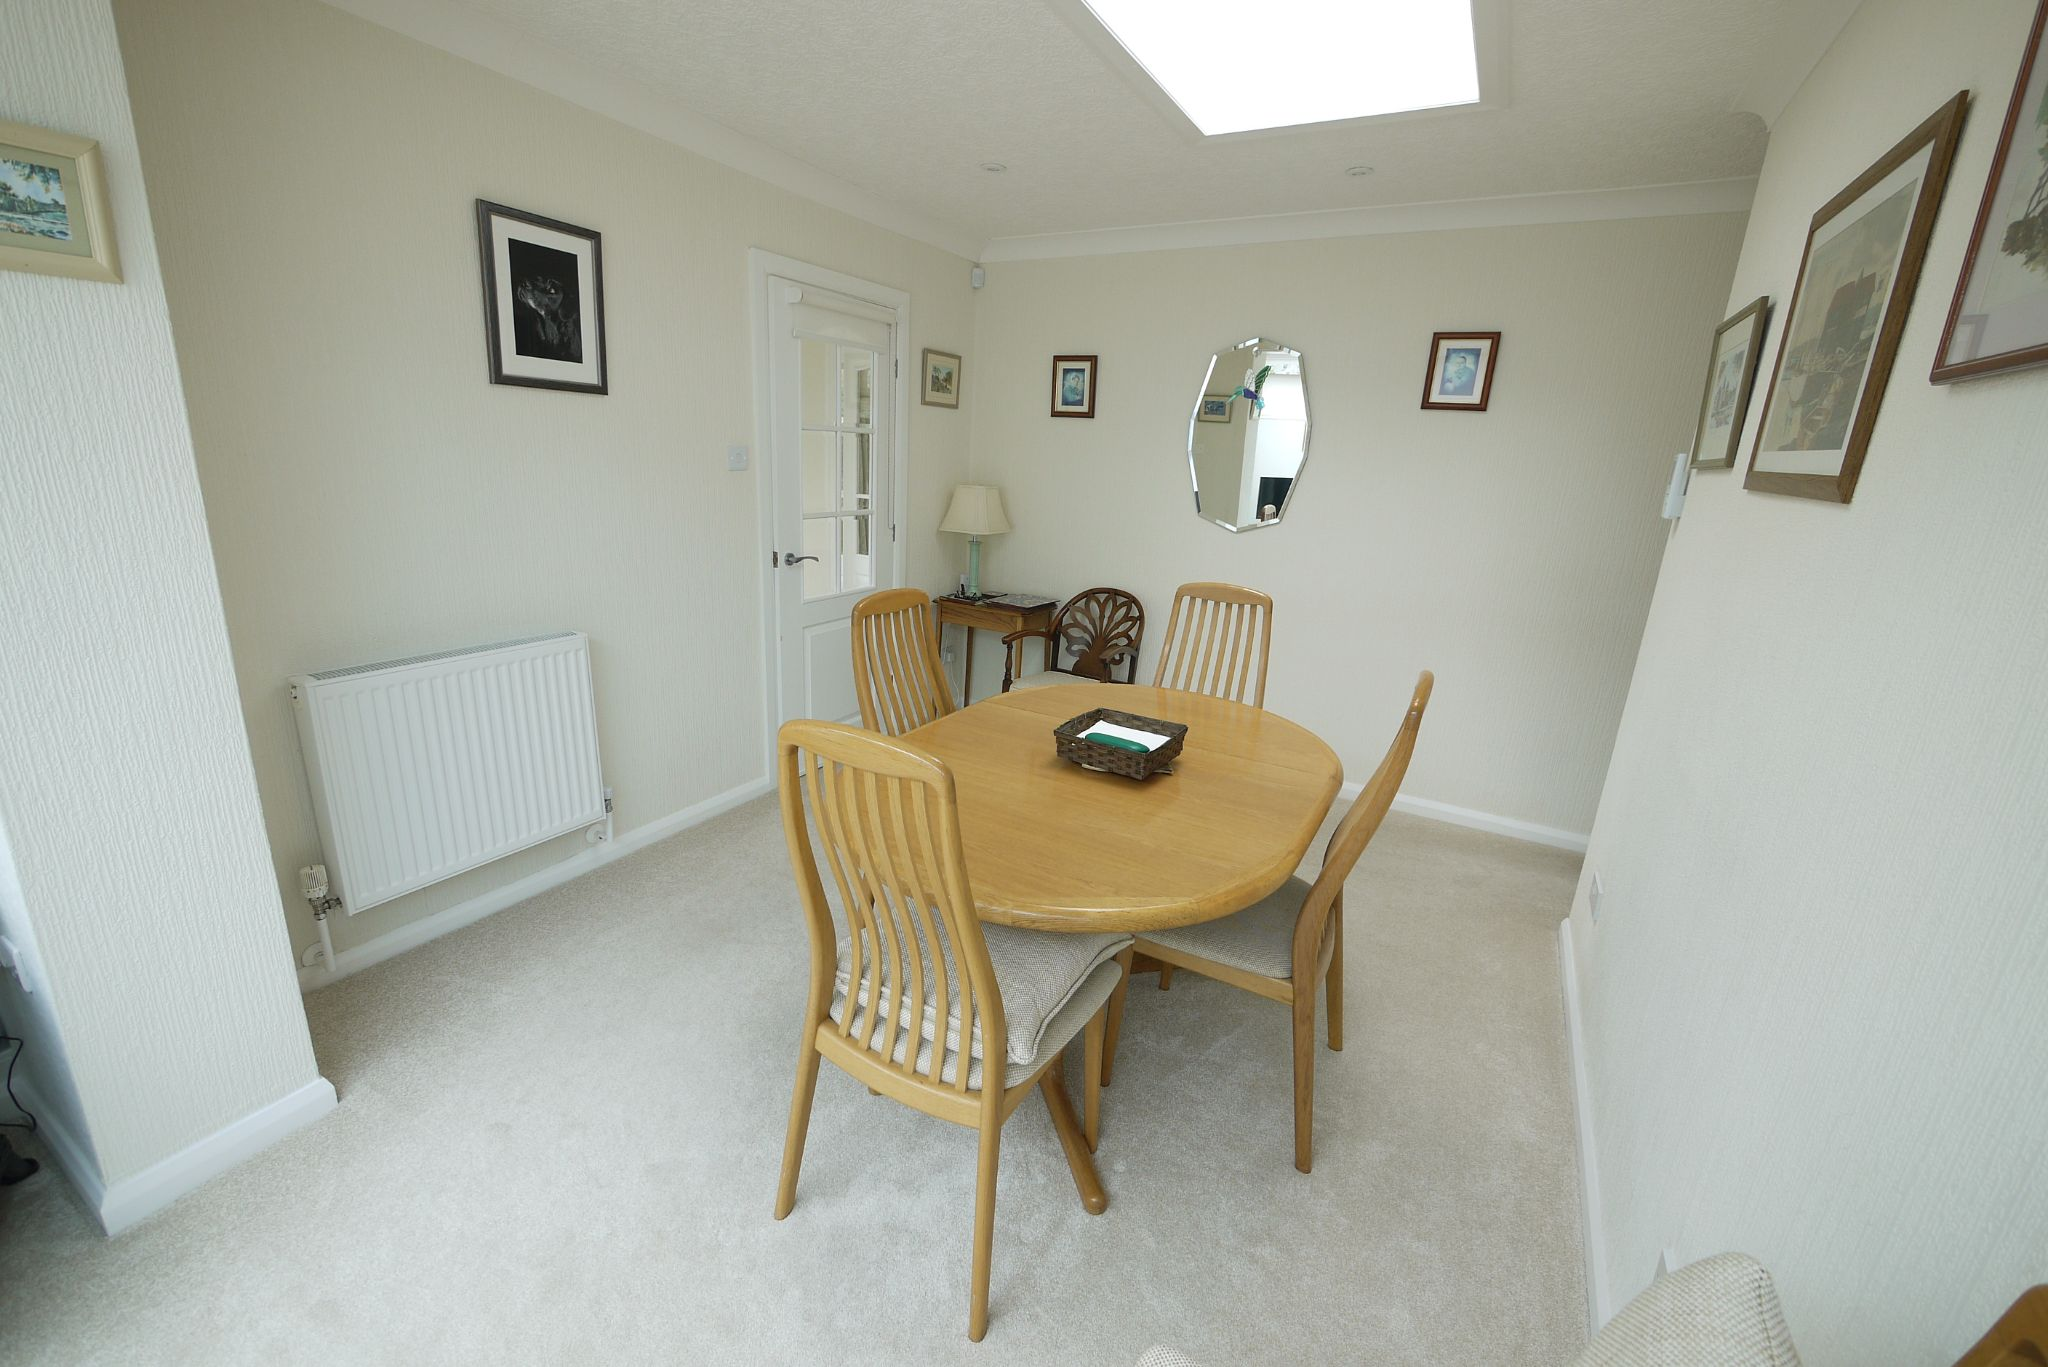 2 bedroom detached bungalow SSTC in Brighouse - Dining Room.